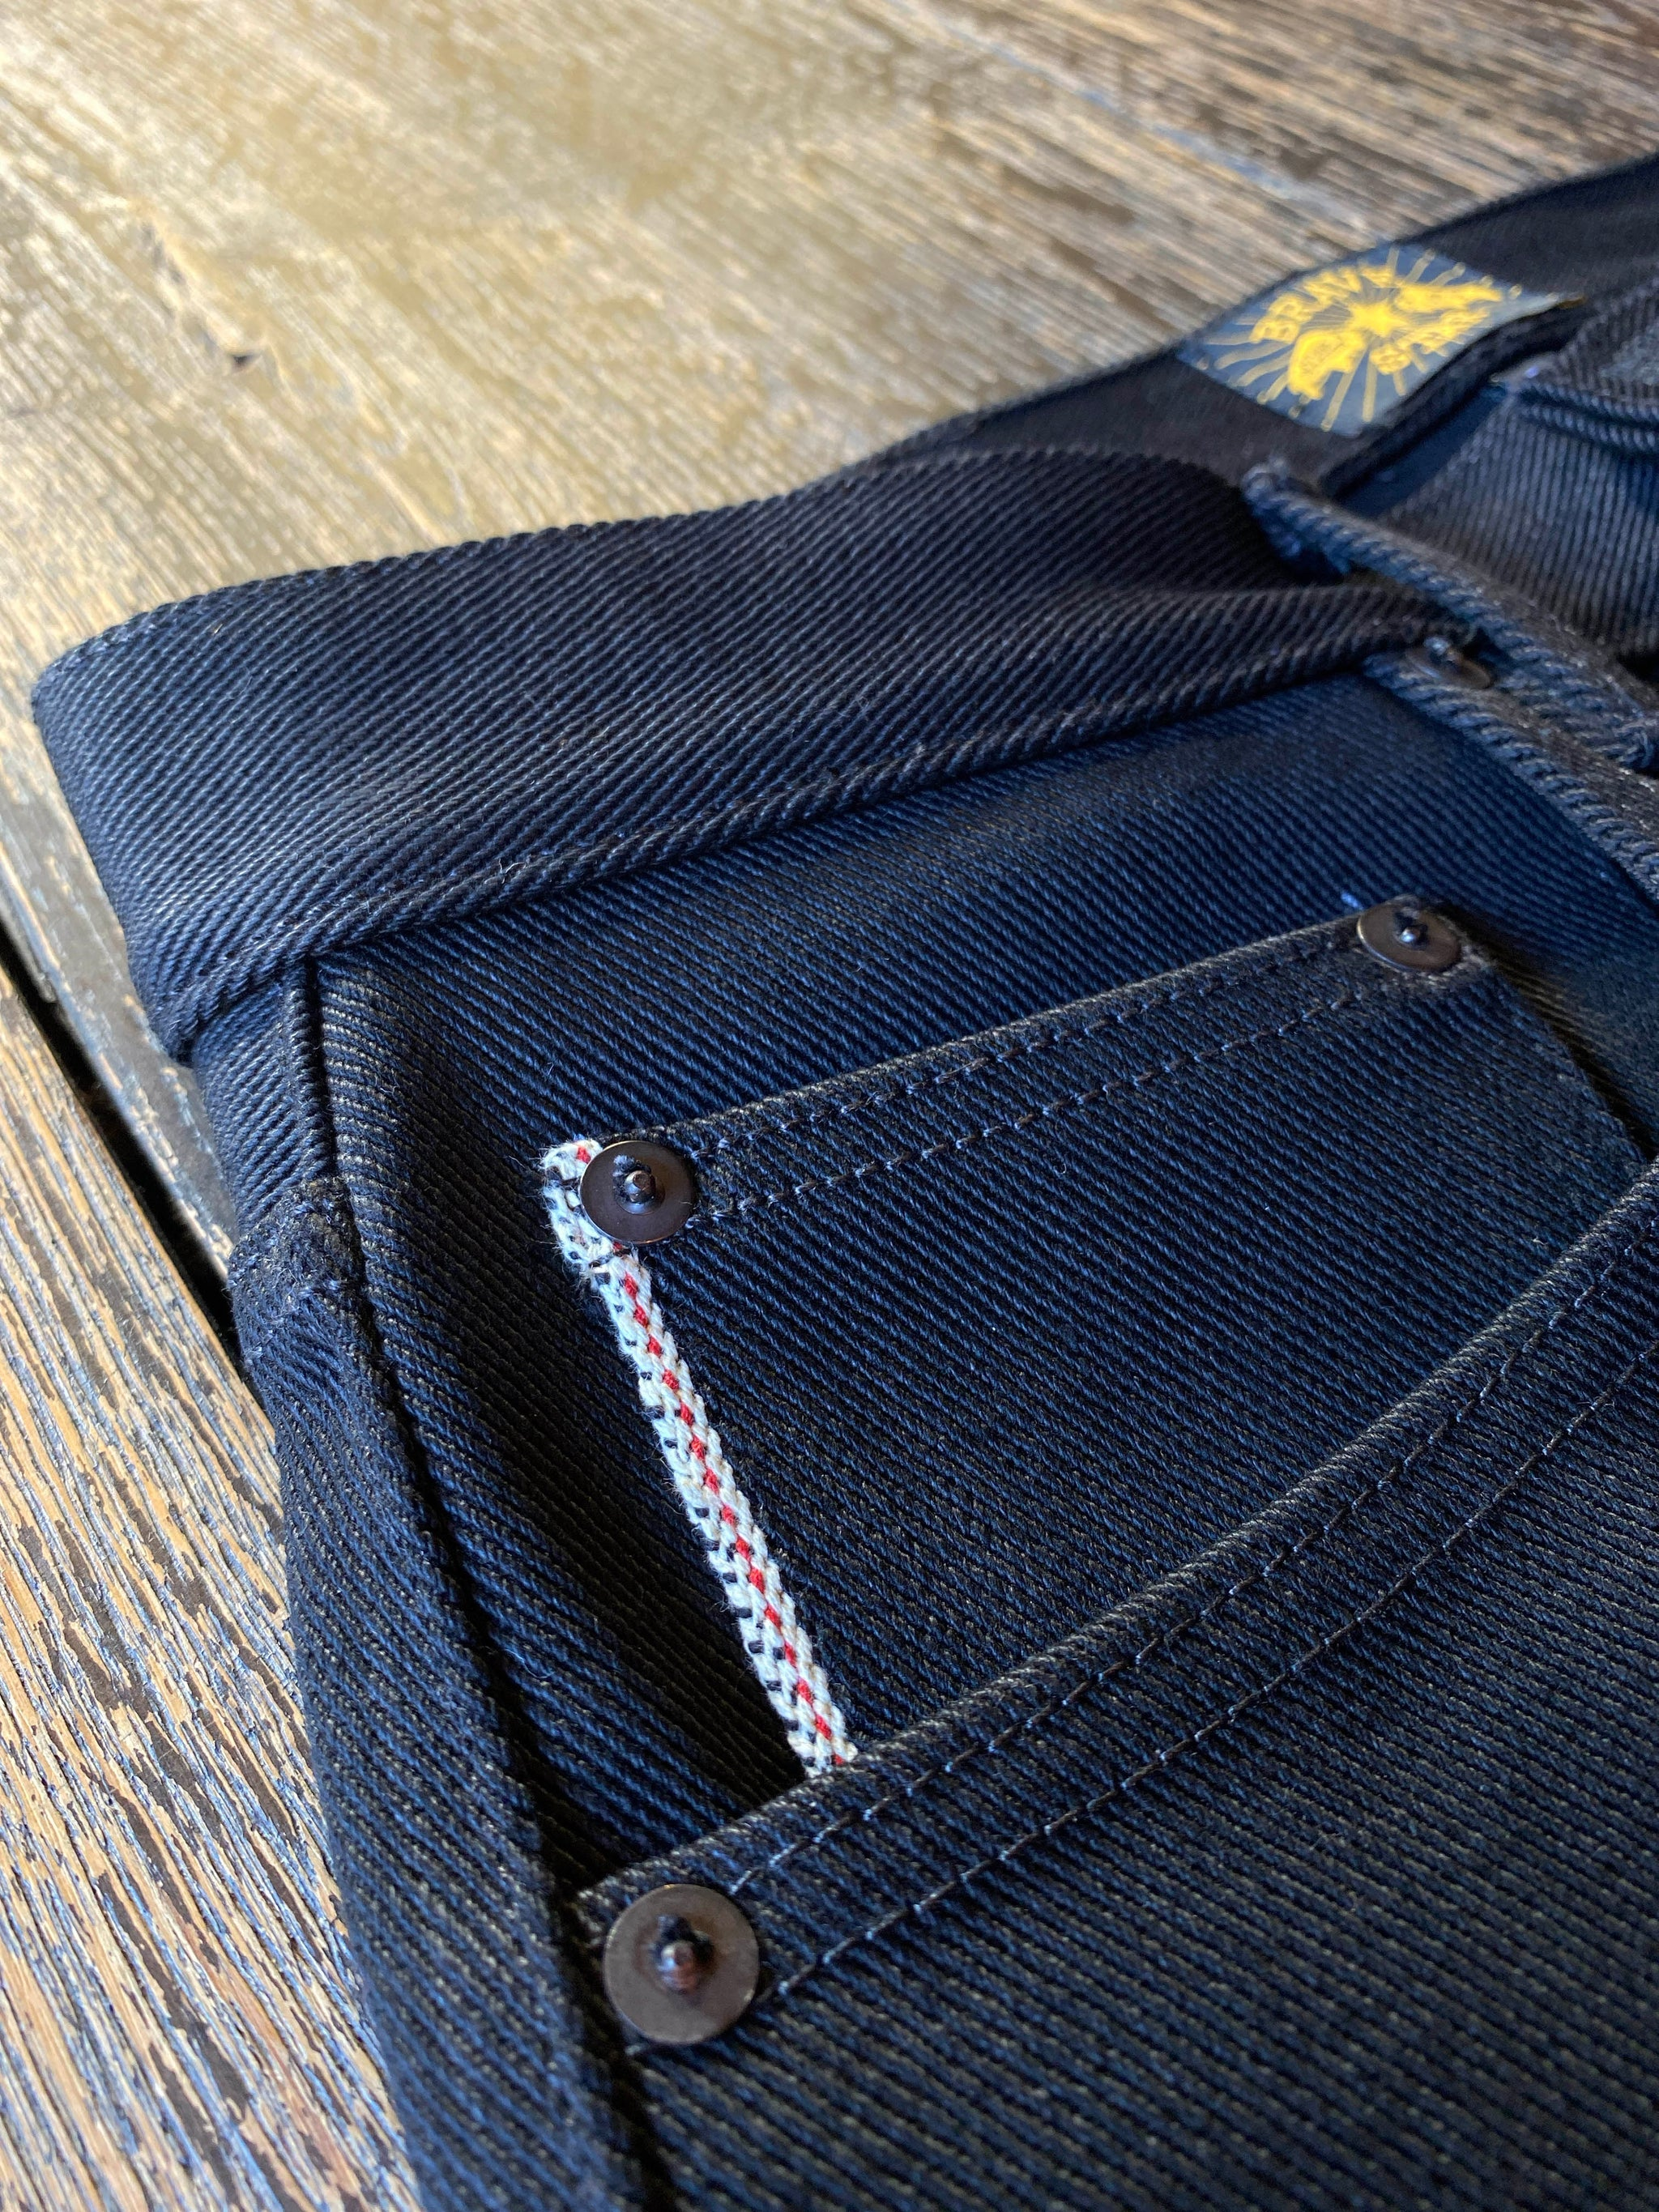 The Slim Taper 21.5oz Heavyweight Double Black Selvage Denim